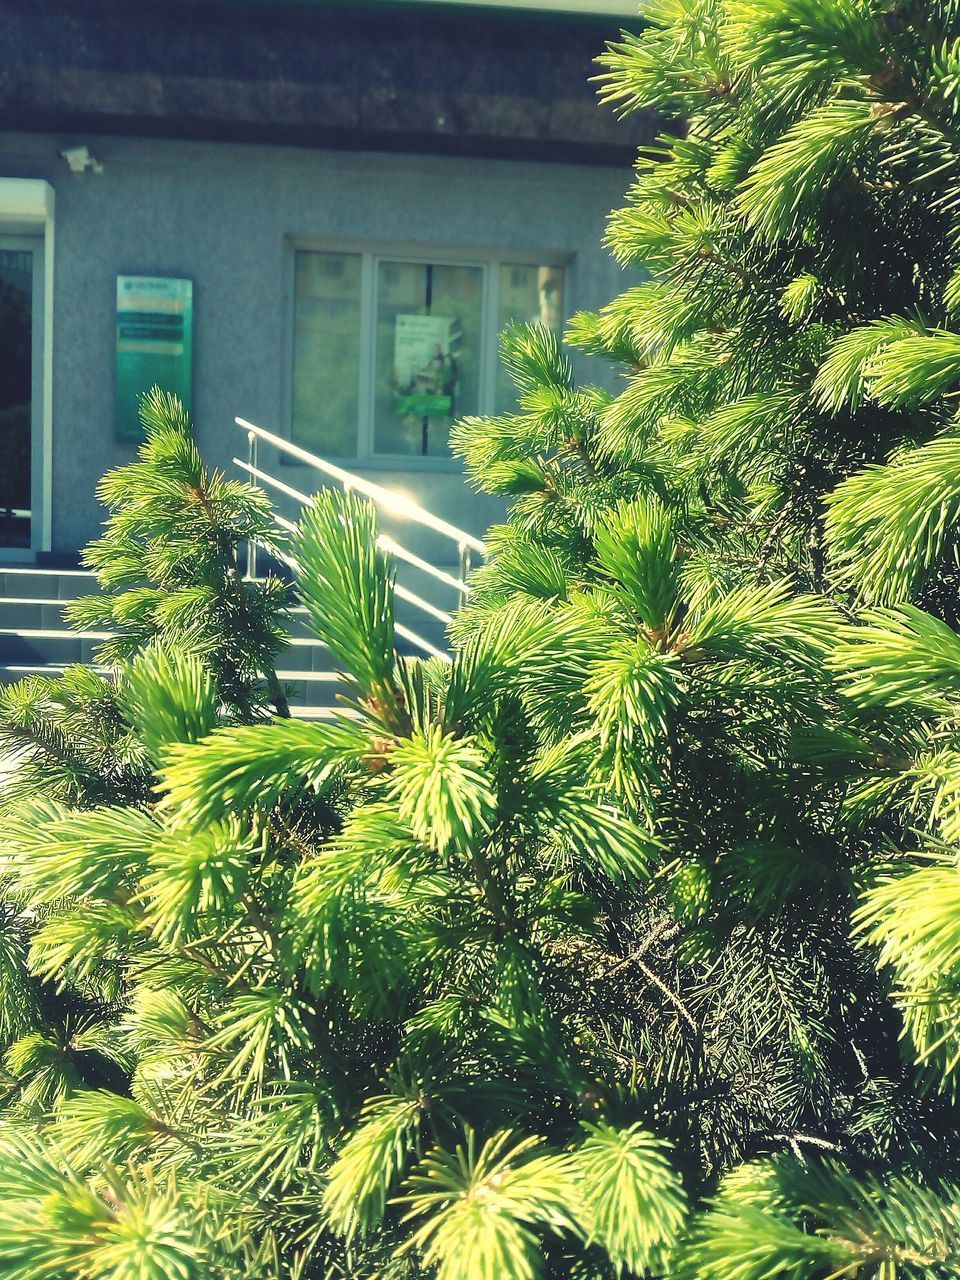 growth, architecture, house, plant, building exterior, built structure, no people, tree, nature, outdoors, green color, day, close-up